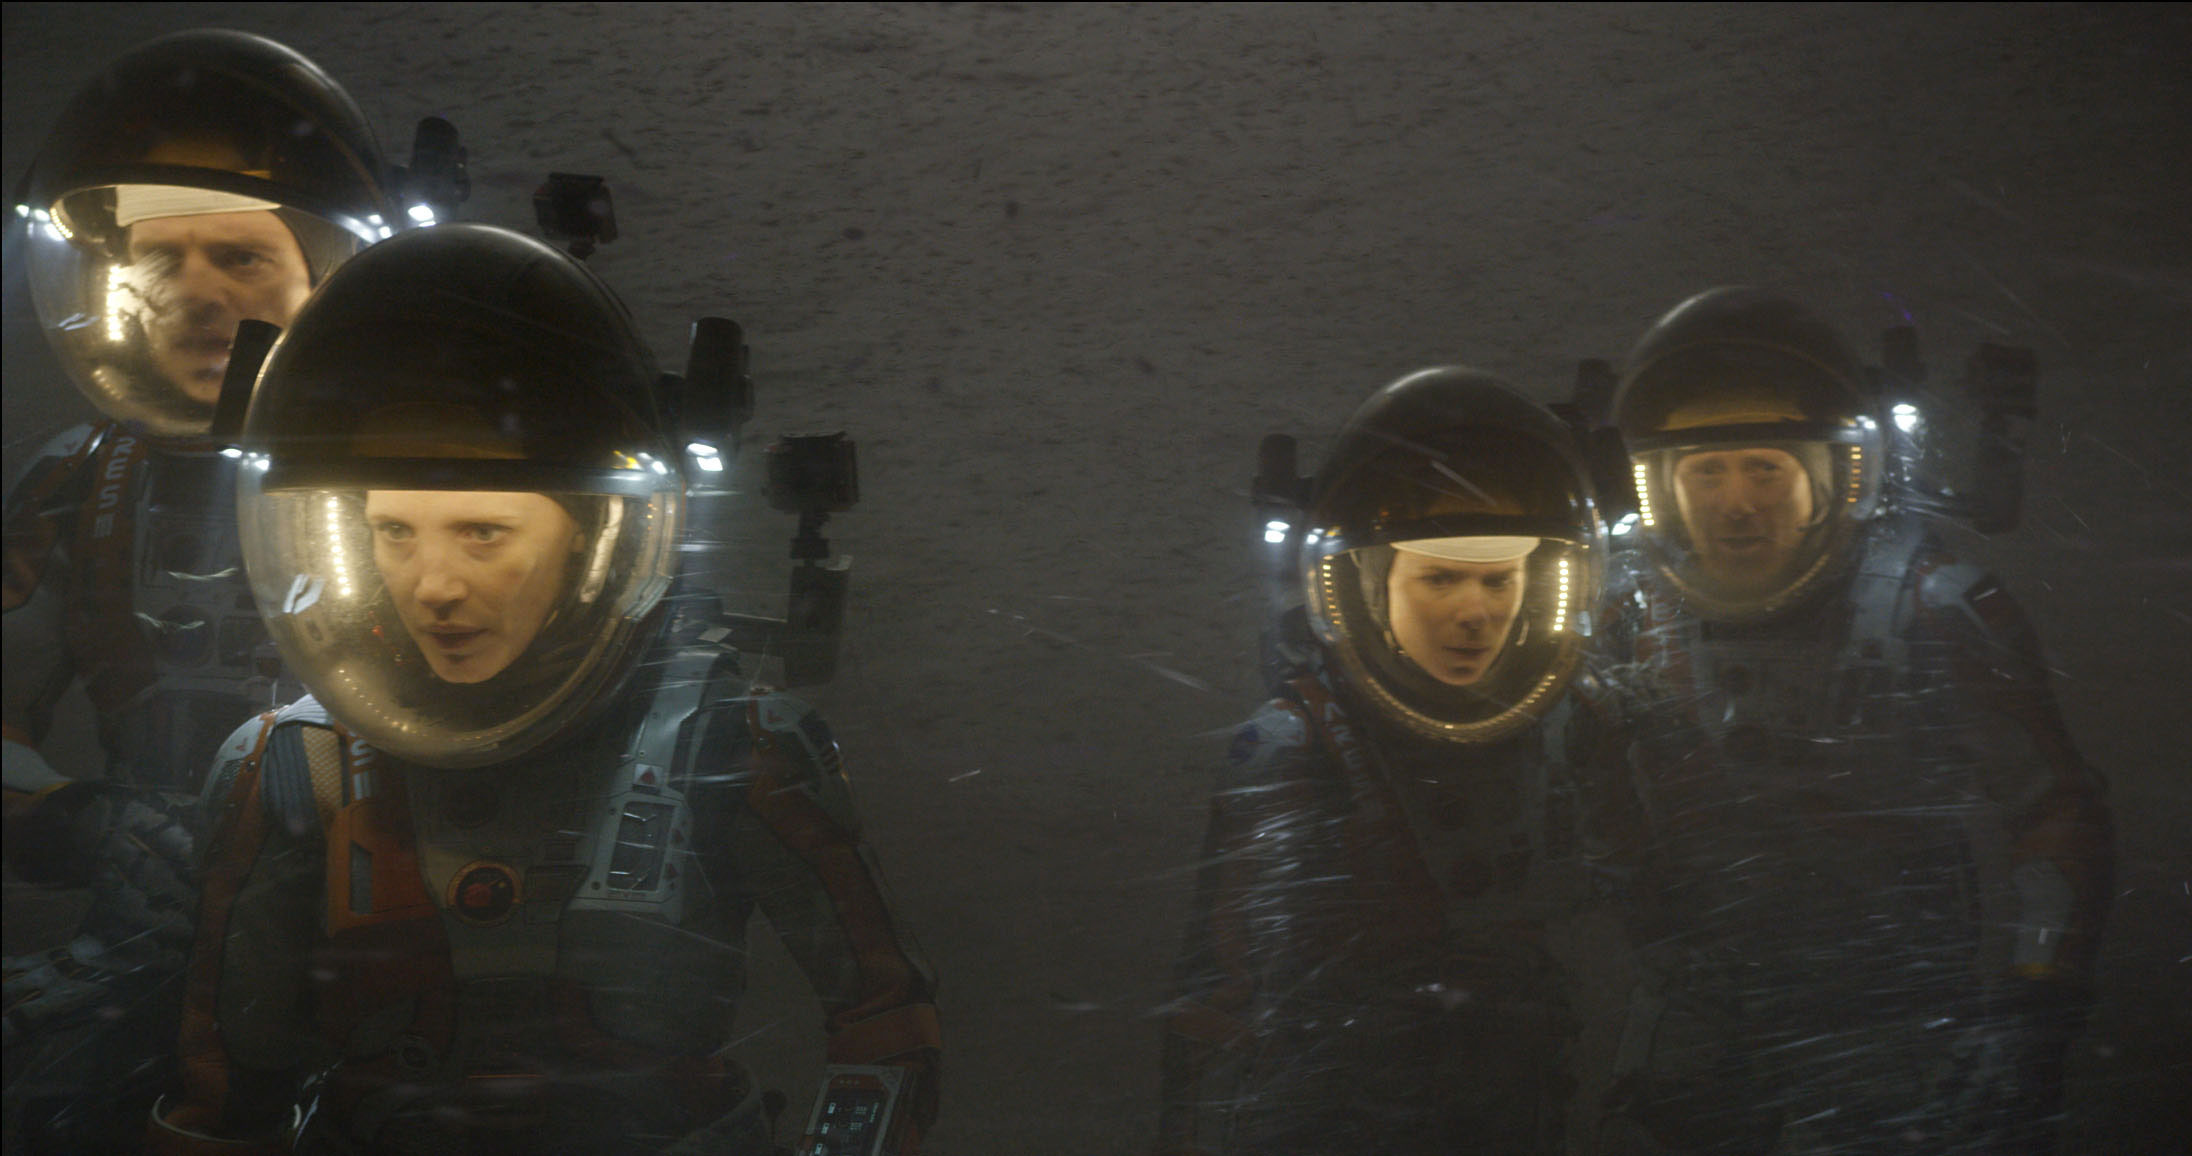 the-martian-trailer-sebastian-stan-jessica-chastain-kate-mara.jpg